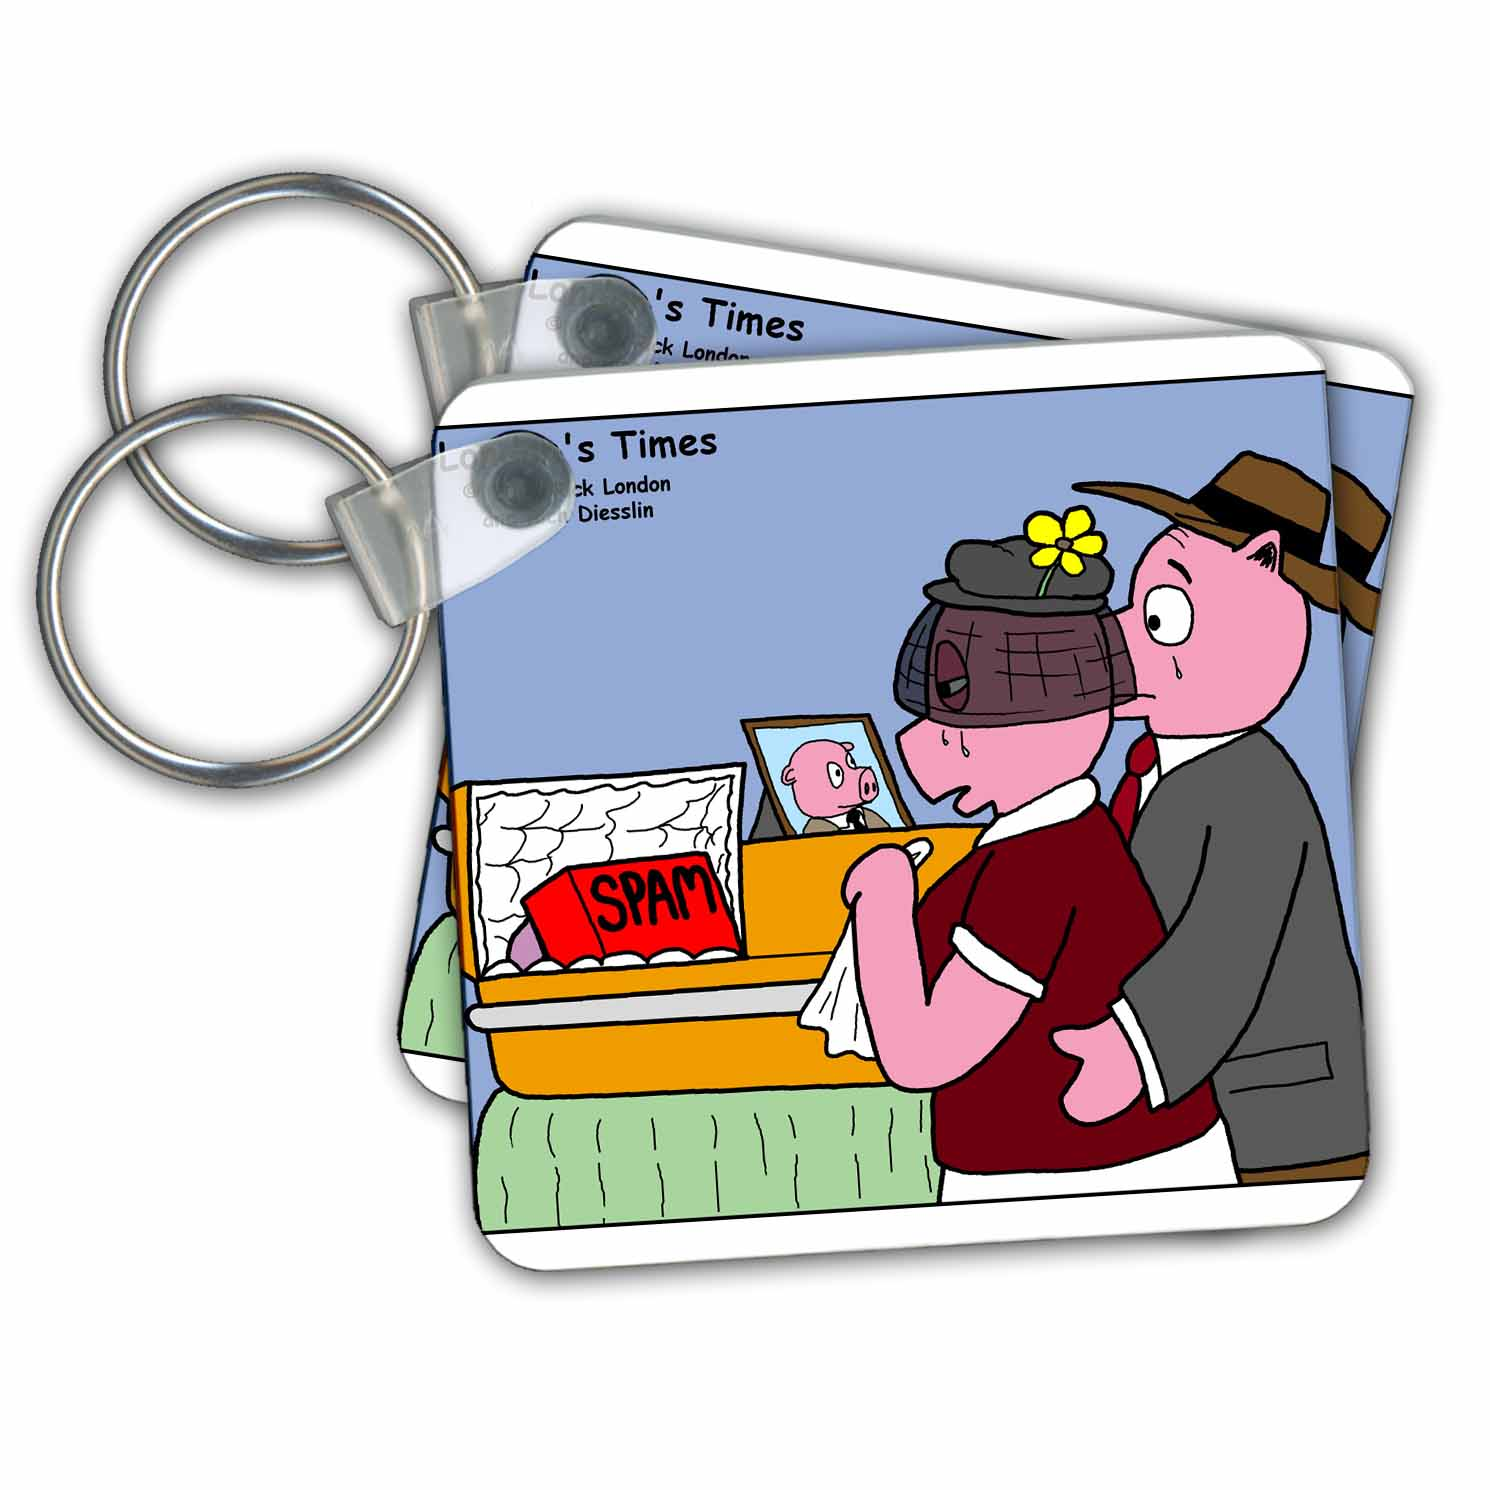 3dRose - Rich Diesslins Funny Animals Cartoons - Pig Funeral - SPAM - Key Chains at Sears.com